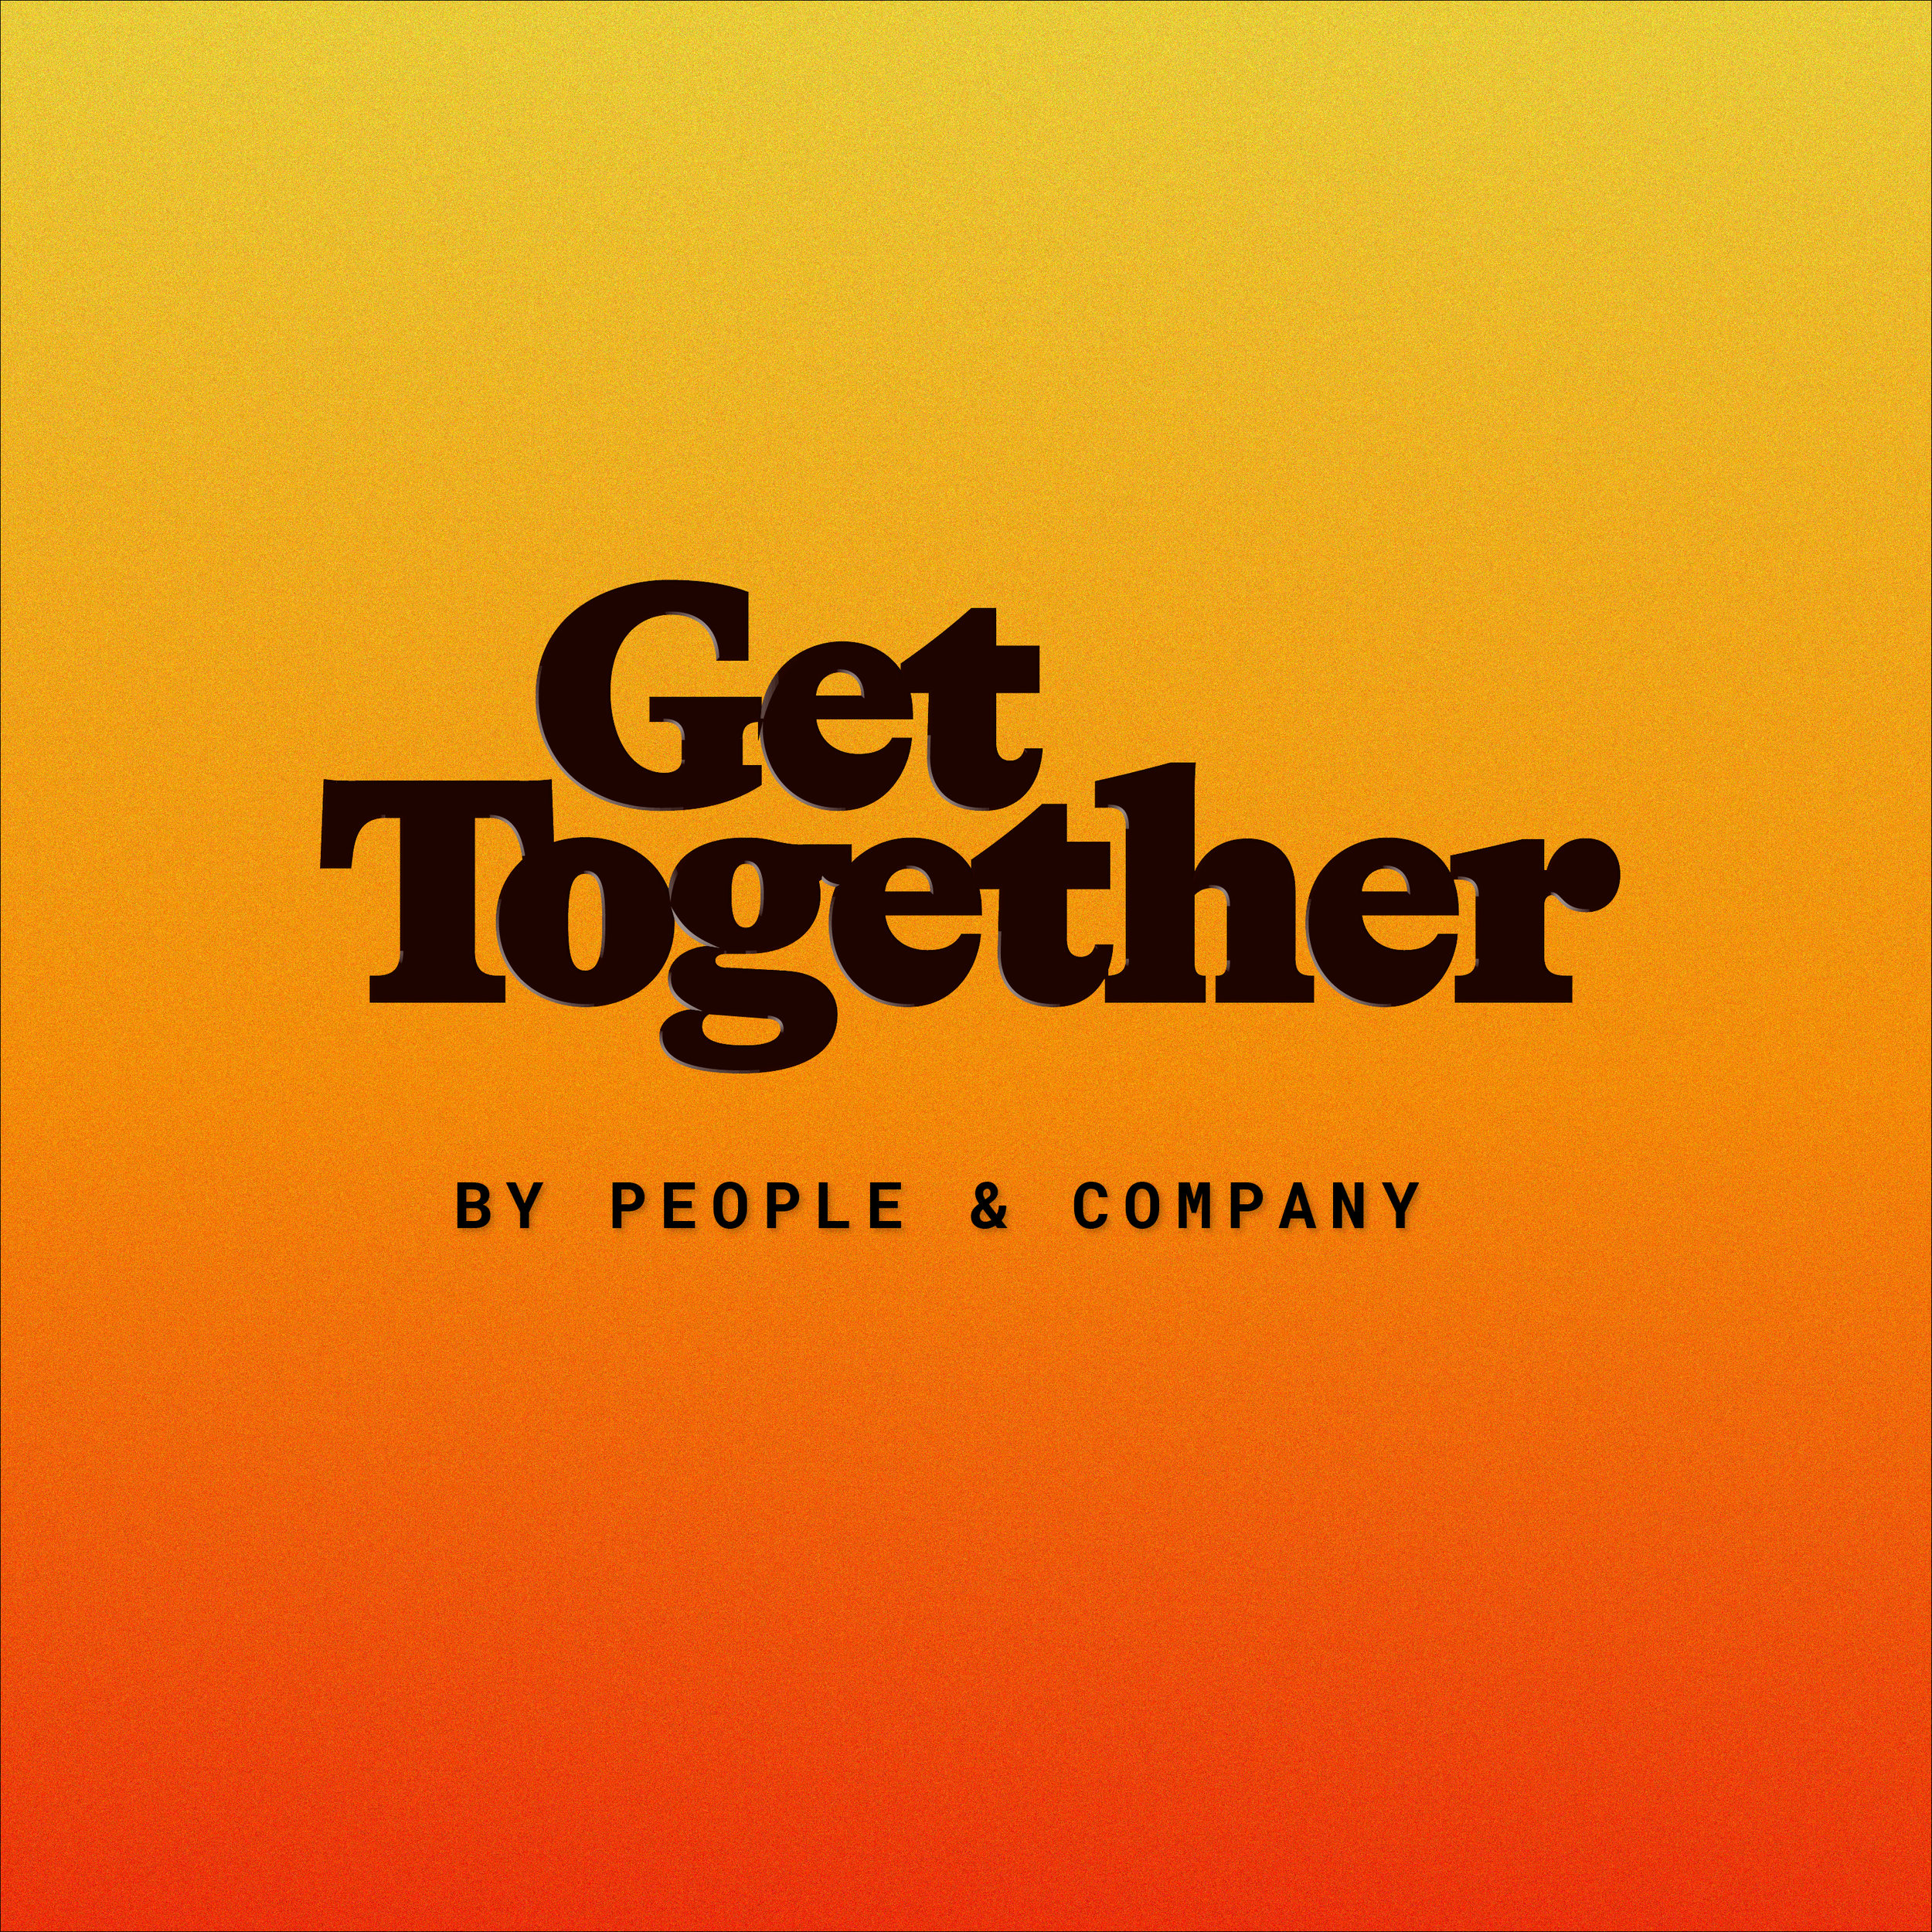 GetTogetherArtwork-Cover-01.jpg